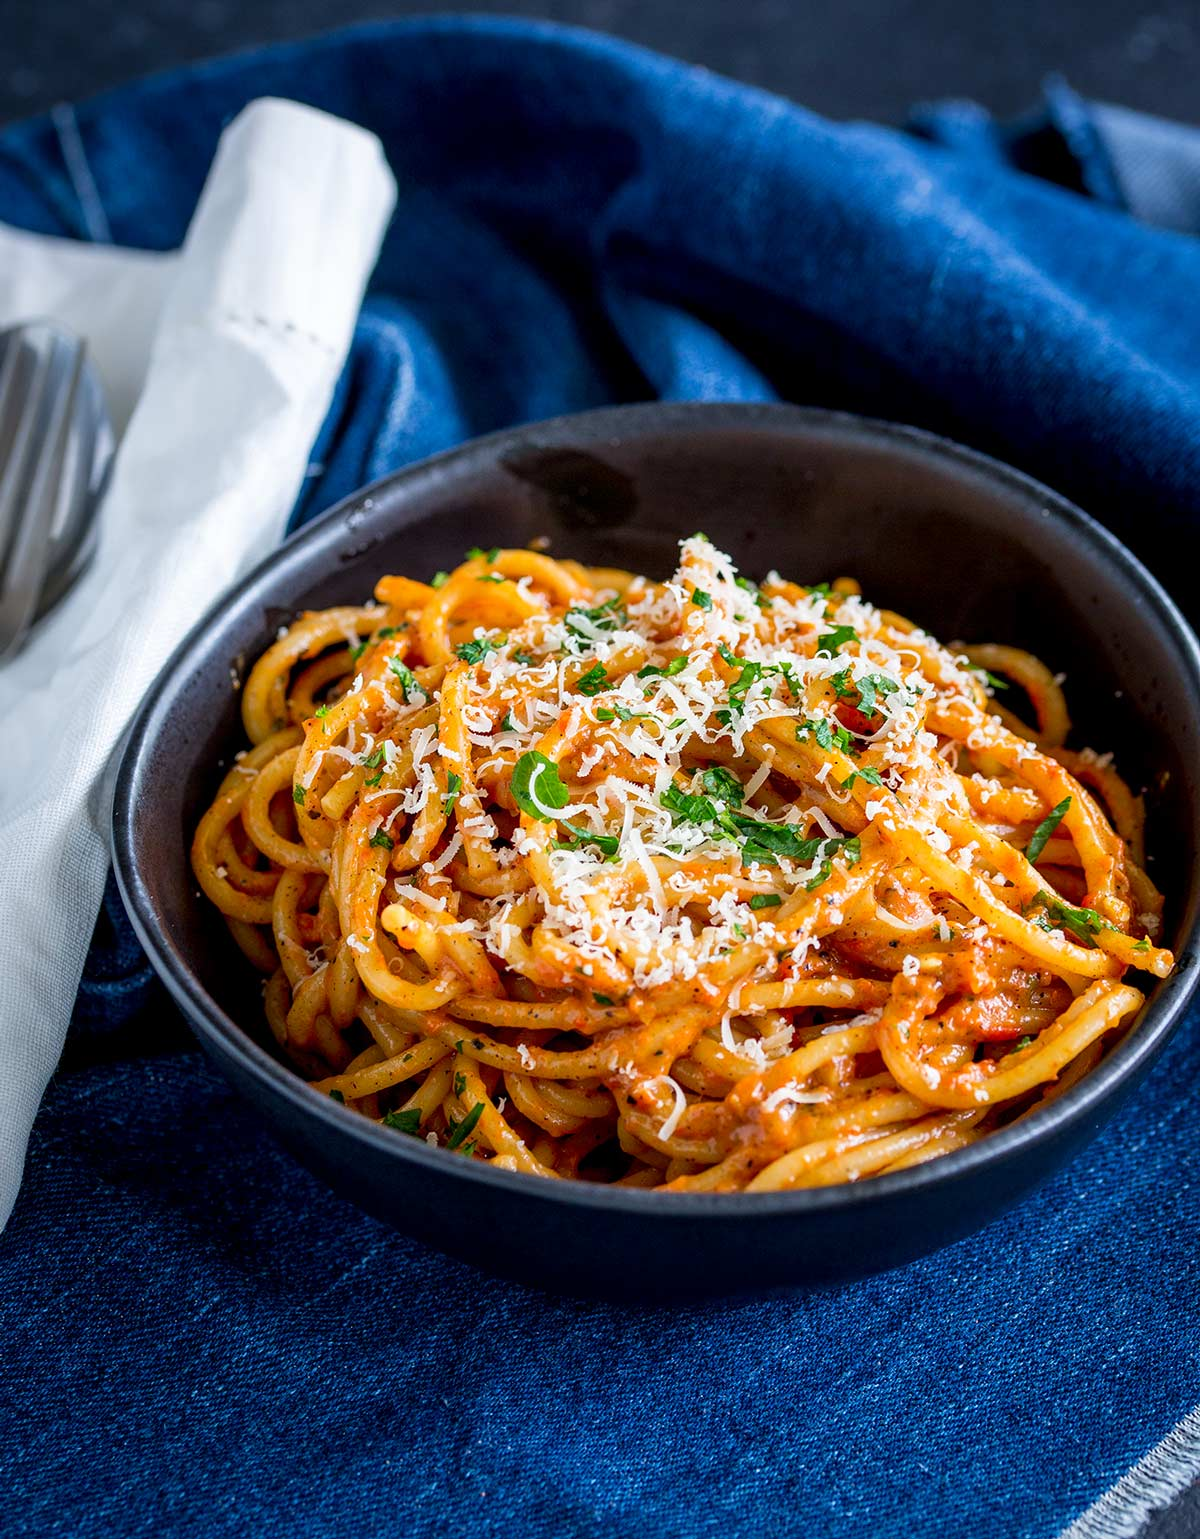 spaghetti in a back bowl with a denim napkin and a silver fork